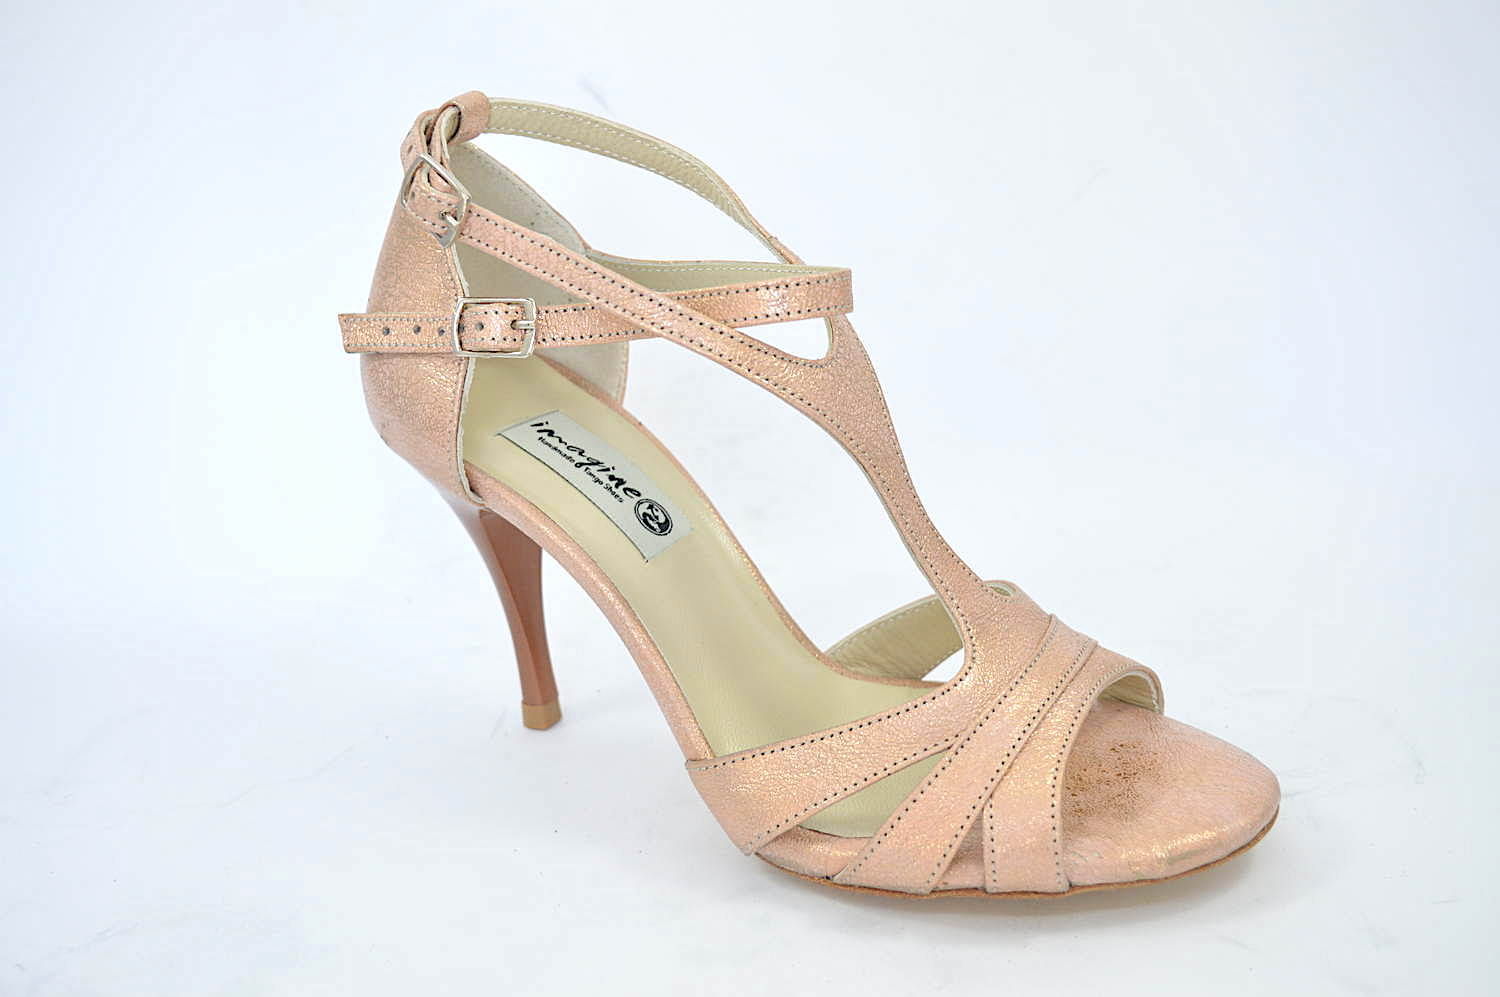 Women Argentine Tango Shoe, in unique beige-pink-gold soft leather